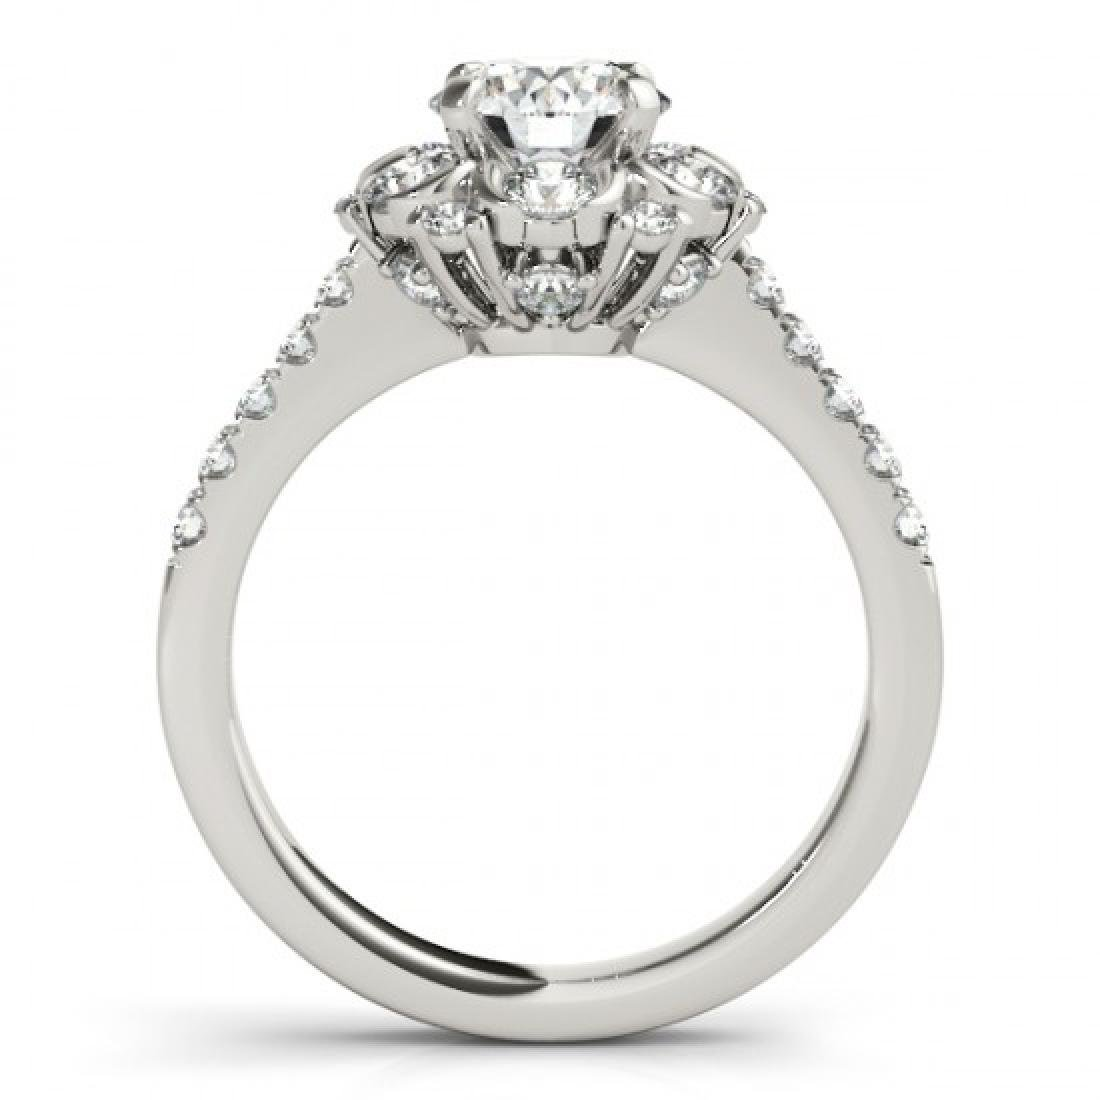 1.8 CTW Certified VS/SI Diamond Solitaire Halo Ring 14K - 2